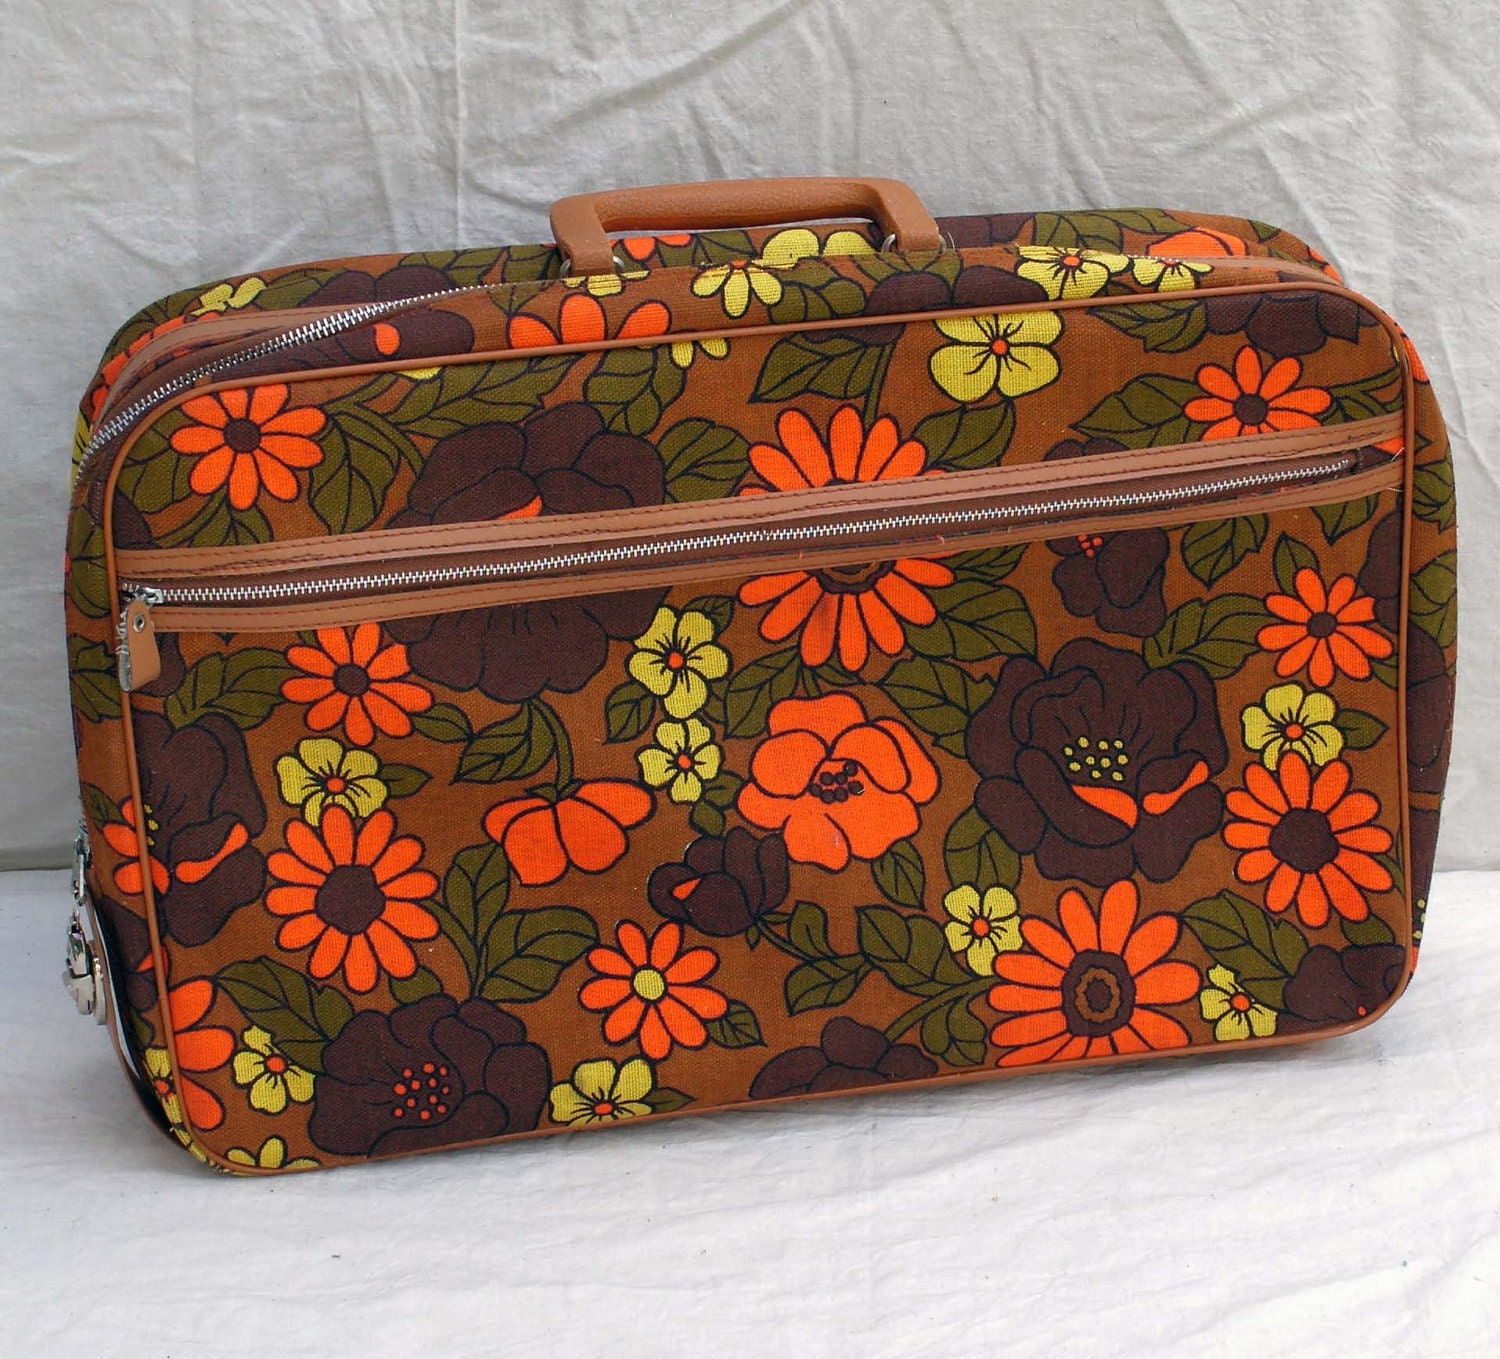 Flower Power Overnight Suitcase Orange Avocado Yellow Brown Lined Canvas Luggage Weekender 1960s